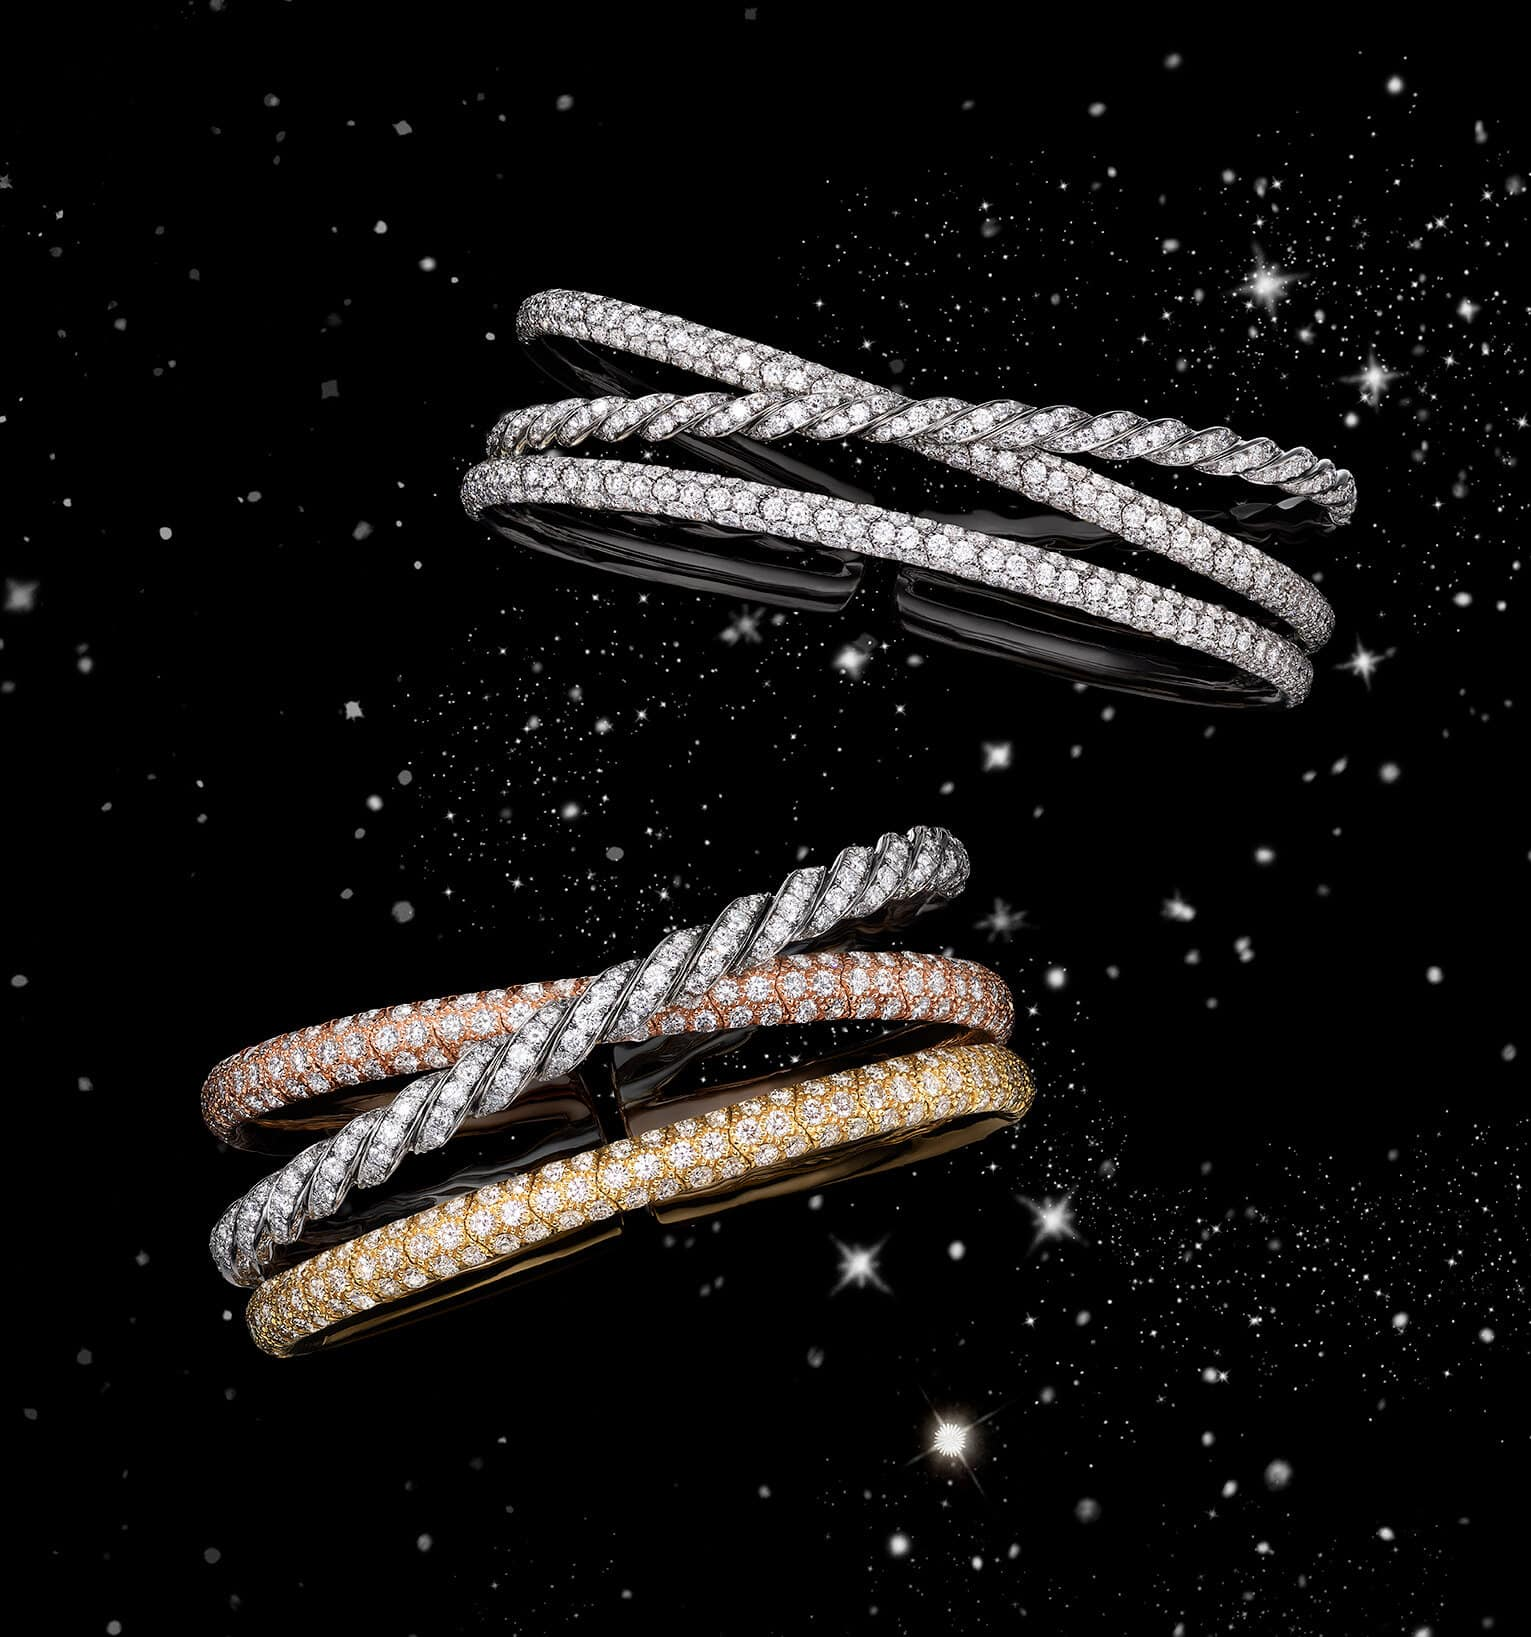 A color photo shows two David Yurman Pavéflex three-row bracelets floating in front of a starry night sky. One bracelet is crafted from 18K white gold with pavé diamonds while the other is crafted from 18K yellow, white and rose gold with pavé diamonds.